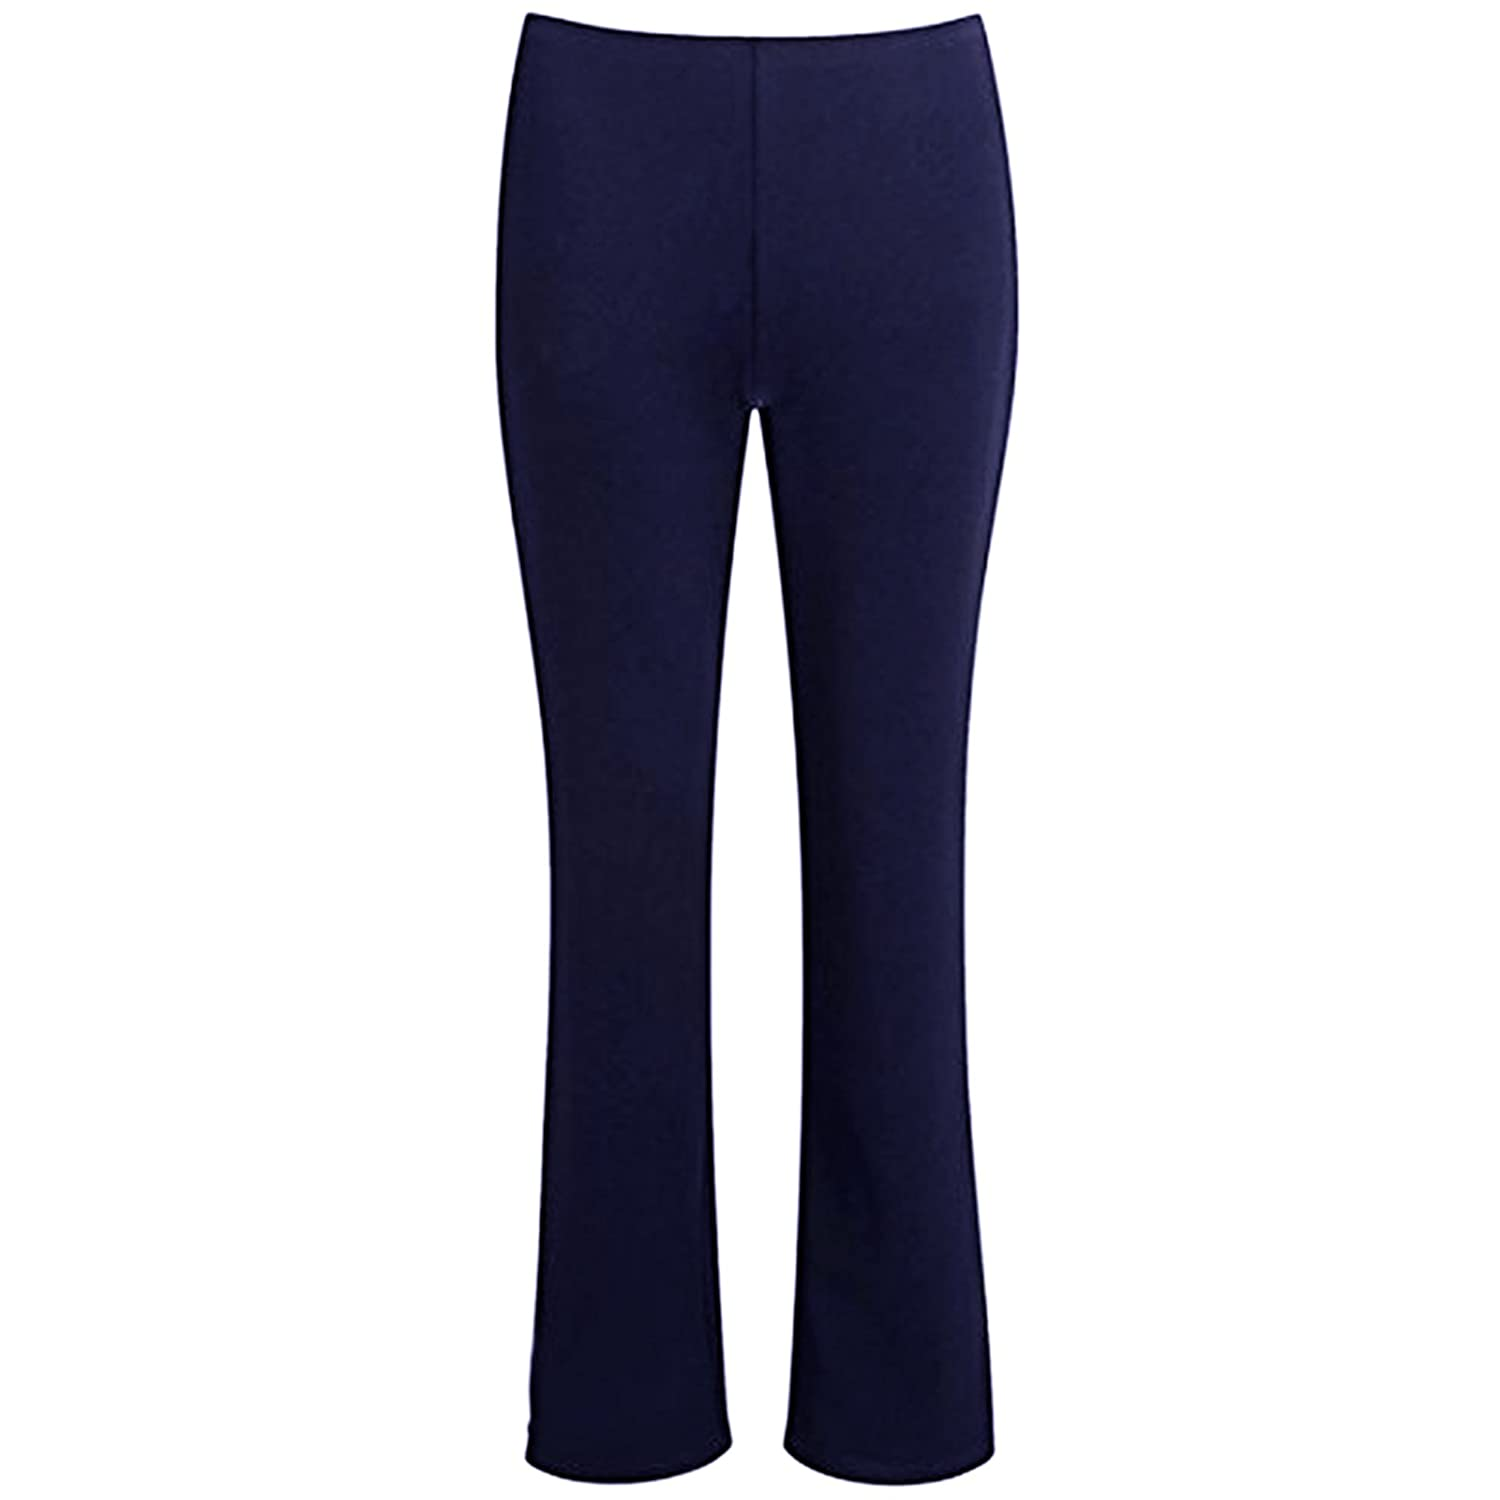 MyShoeStore Ladies Stretch Bootleg Trousers Ribbed Womens Boot Cut Elasticated Waist Pants Work Wear Pull On Boot Leg Bottoms Plus Big Sizes 8-26